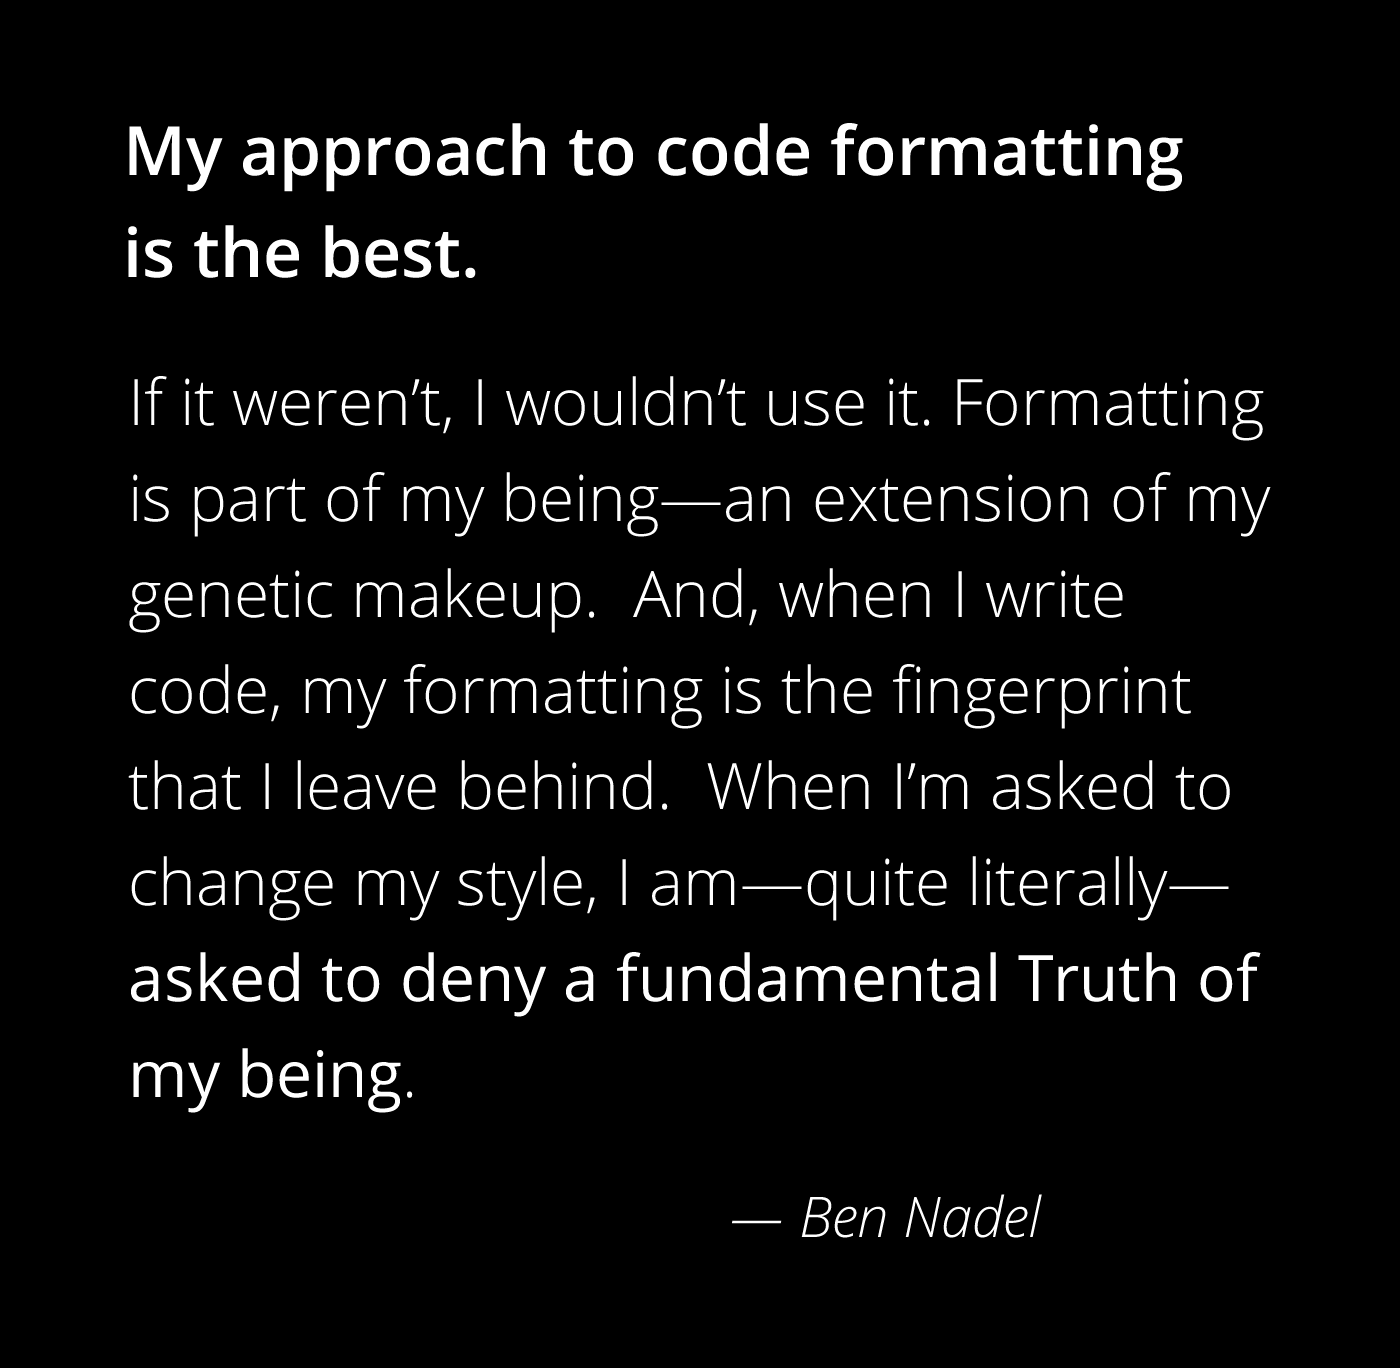 My approach to code formatting is the best.